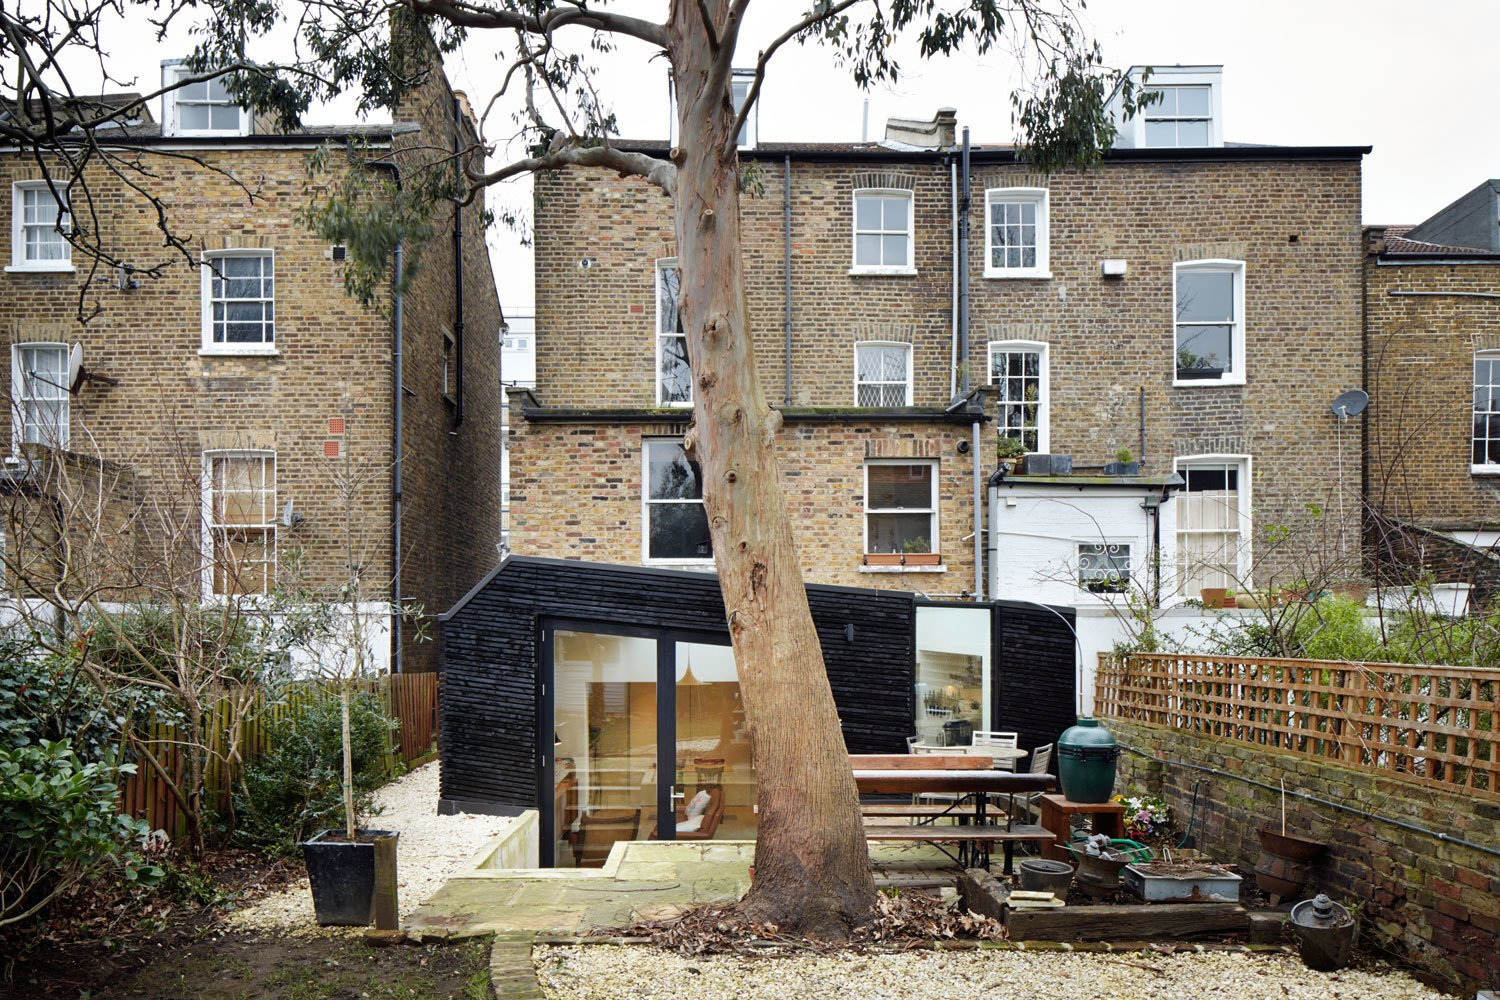 The renovation added a touch of modernity to the building without overwhelming it. The yard remains a work in progress, as the client is still working through ideas for a kitchen garden.  A Modern Addition Gives a London Chef a Dream Kitchen by Laura C. Mallonee